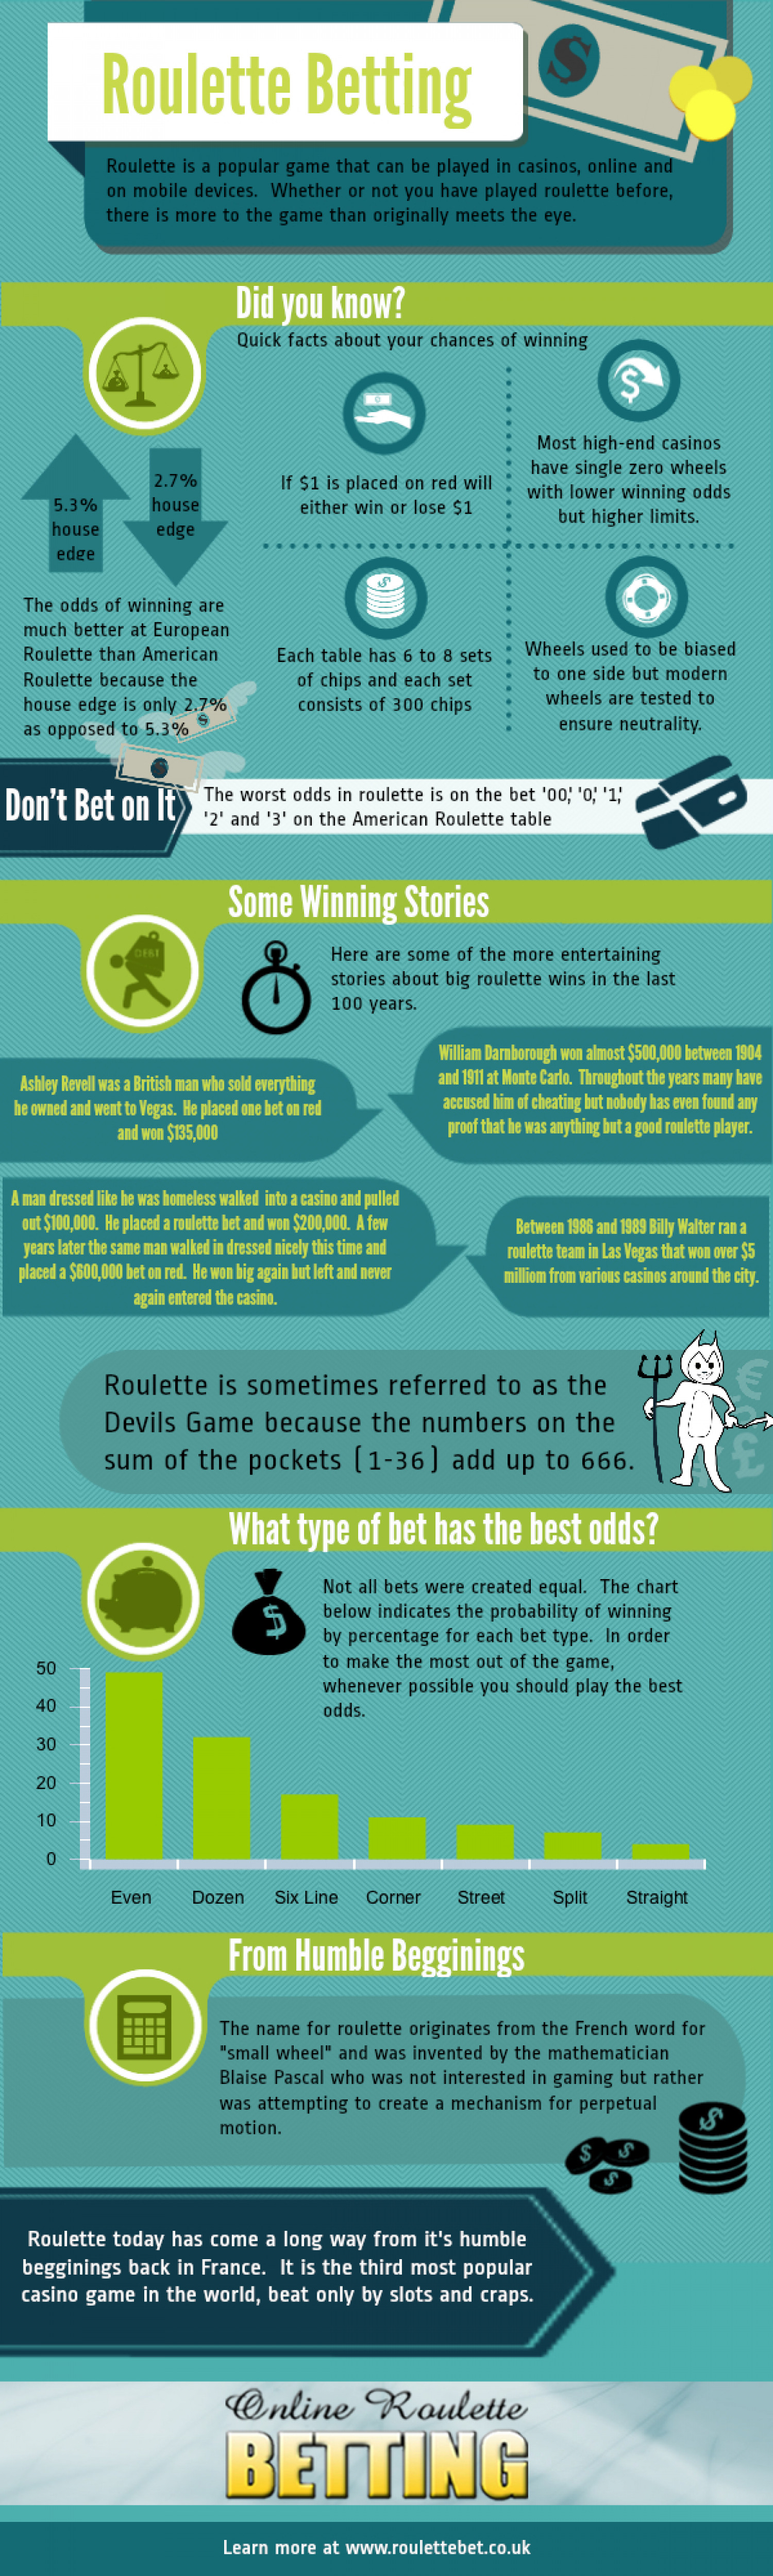 Roulette at a Glance Infographic